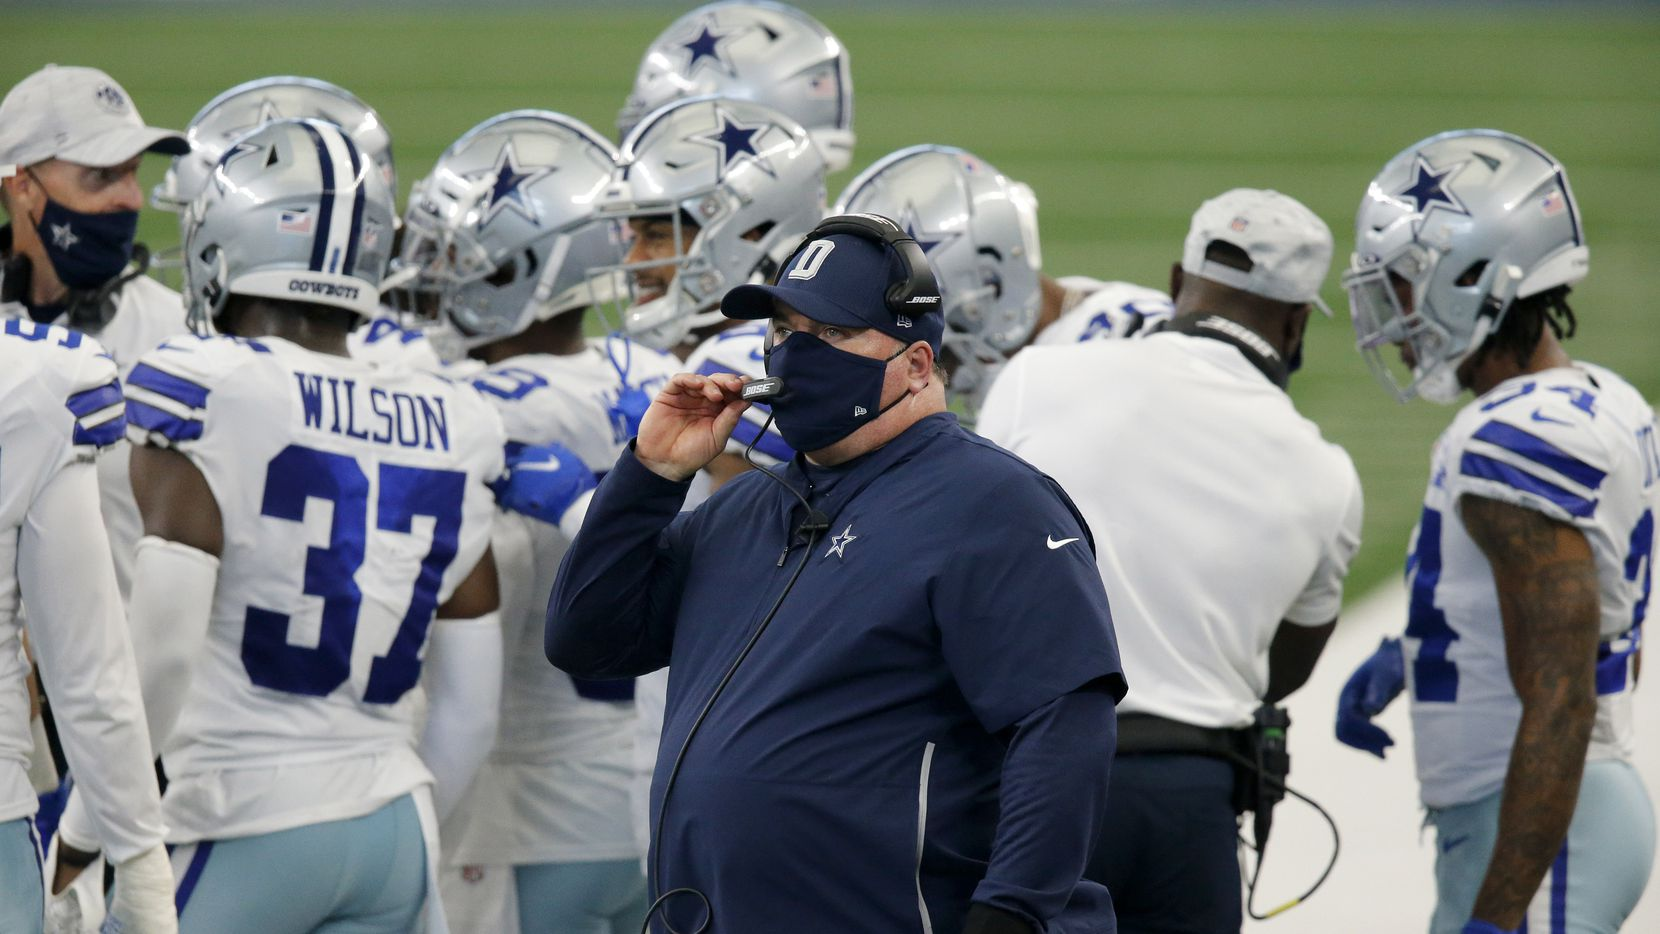 Dallas Cowboys head coach Mike McCarthy is pictured on the sideline after his team scored a second quarter touchdown against the New York Giants at AT&T Stadium Stadium in Arlington, Texas, Sunday, October 11, 2020.